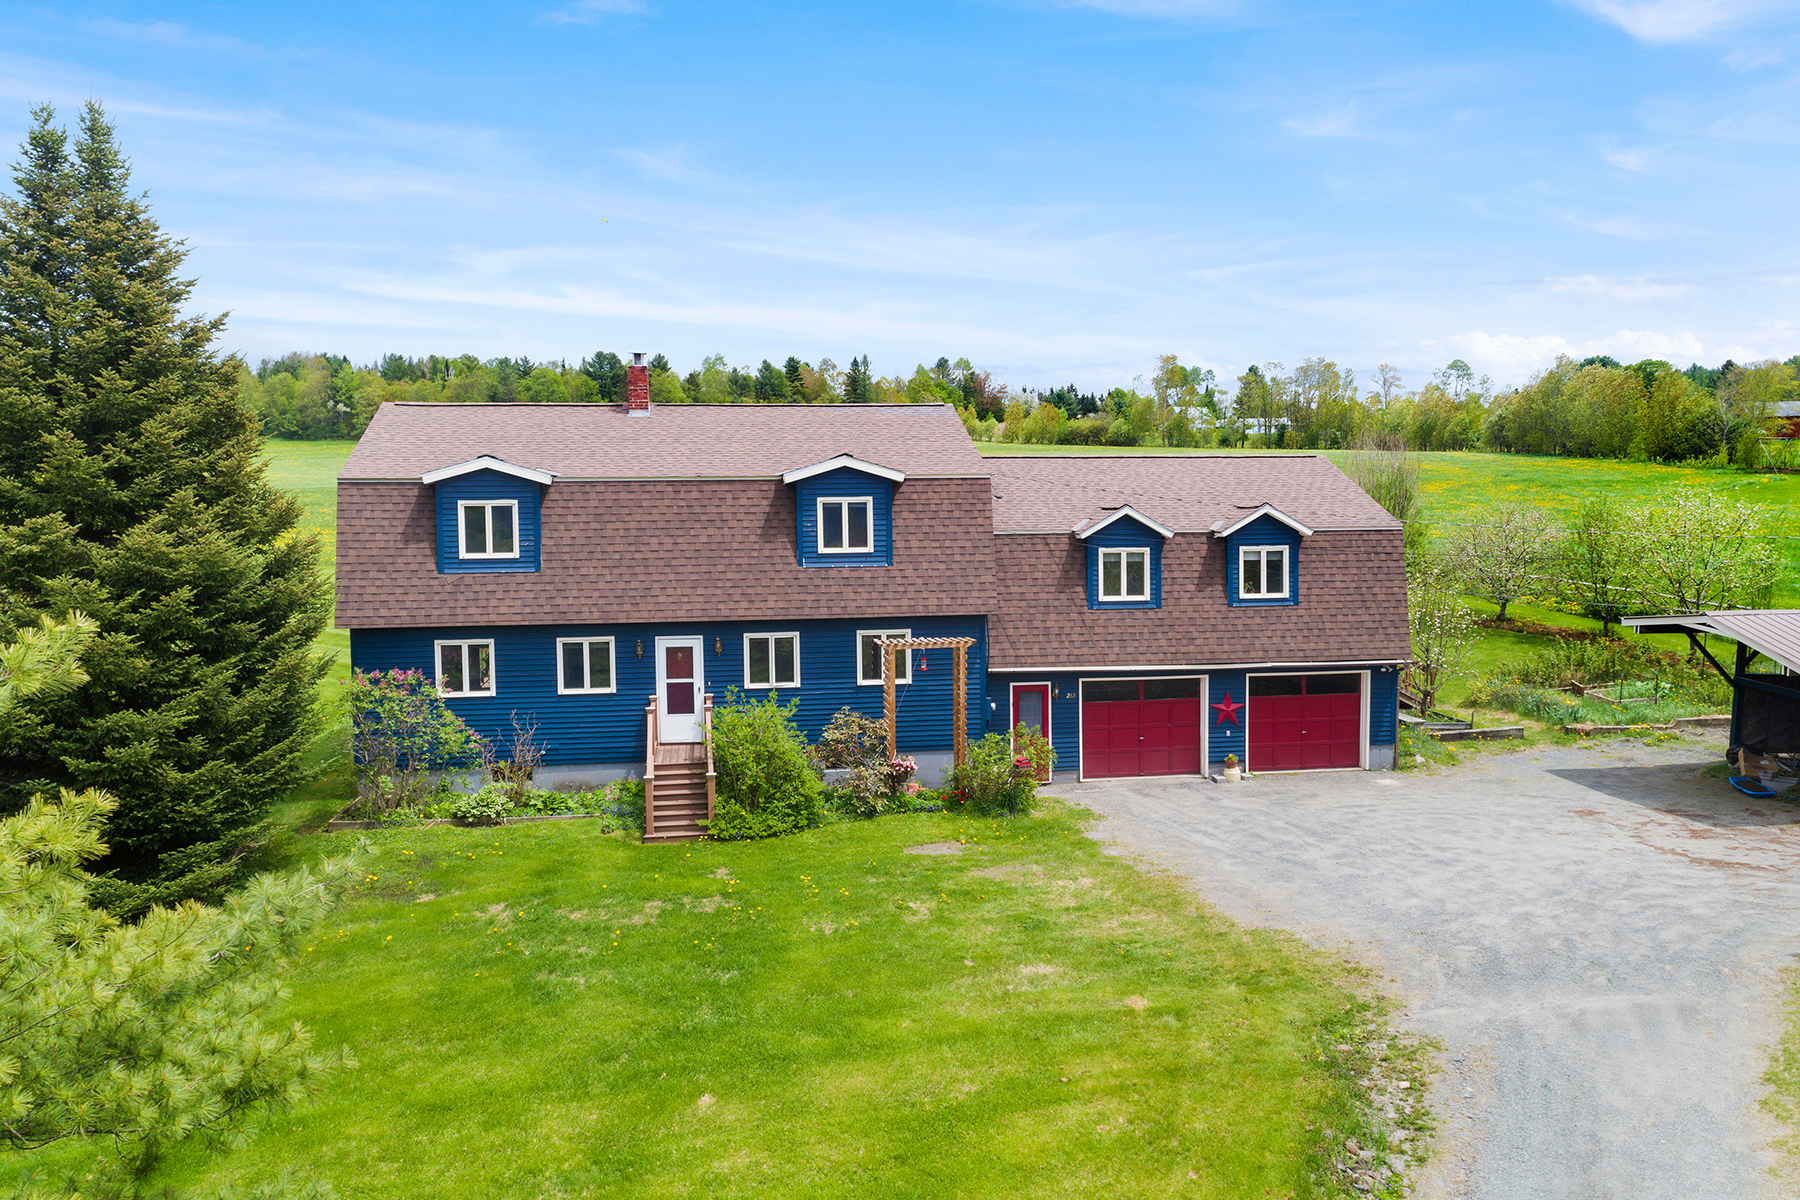 Single Family Homes for Sale at 283 East Village Road, Waterford 283 East Village Rd Waterford, Vermont 05819 United States